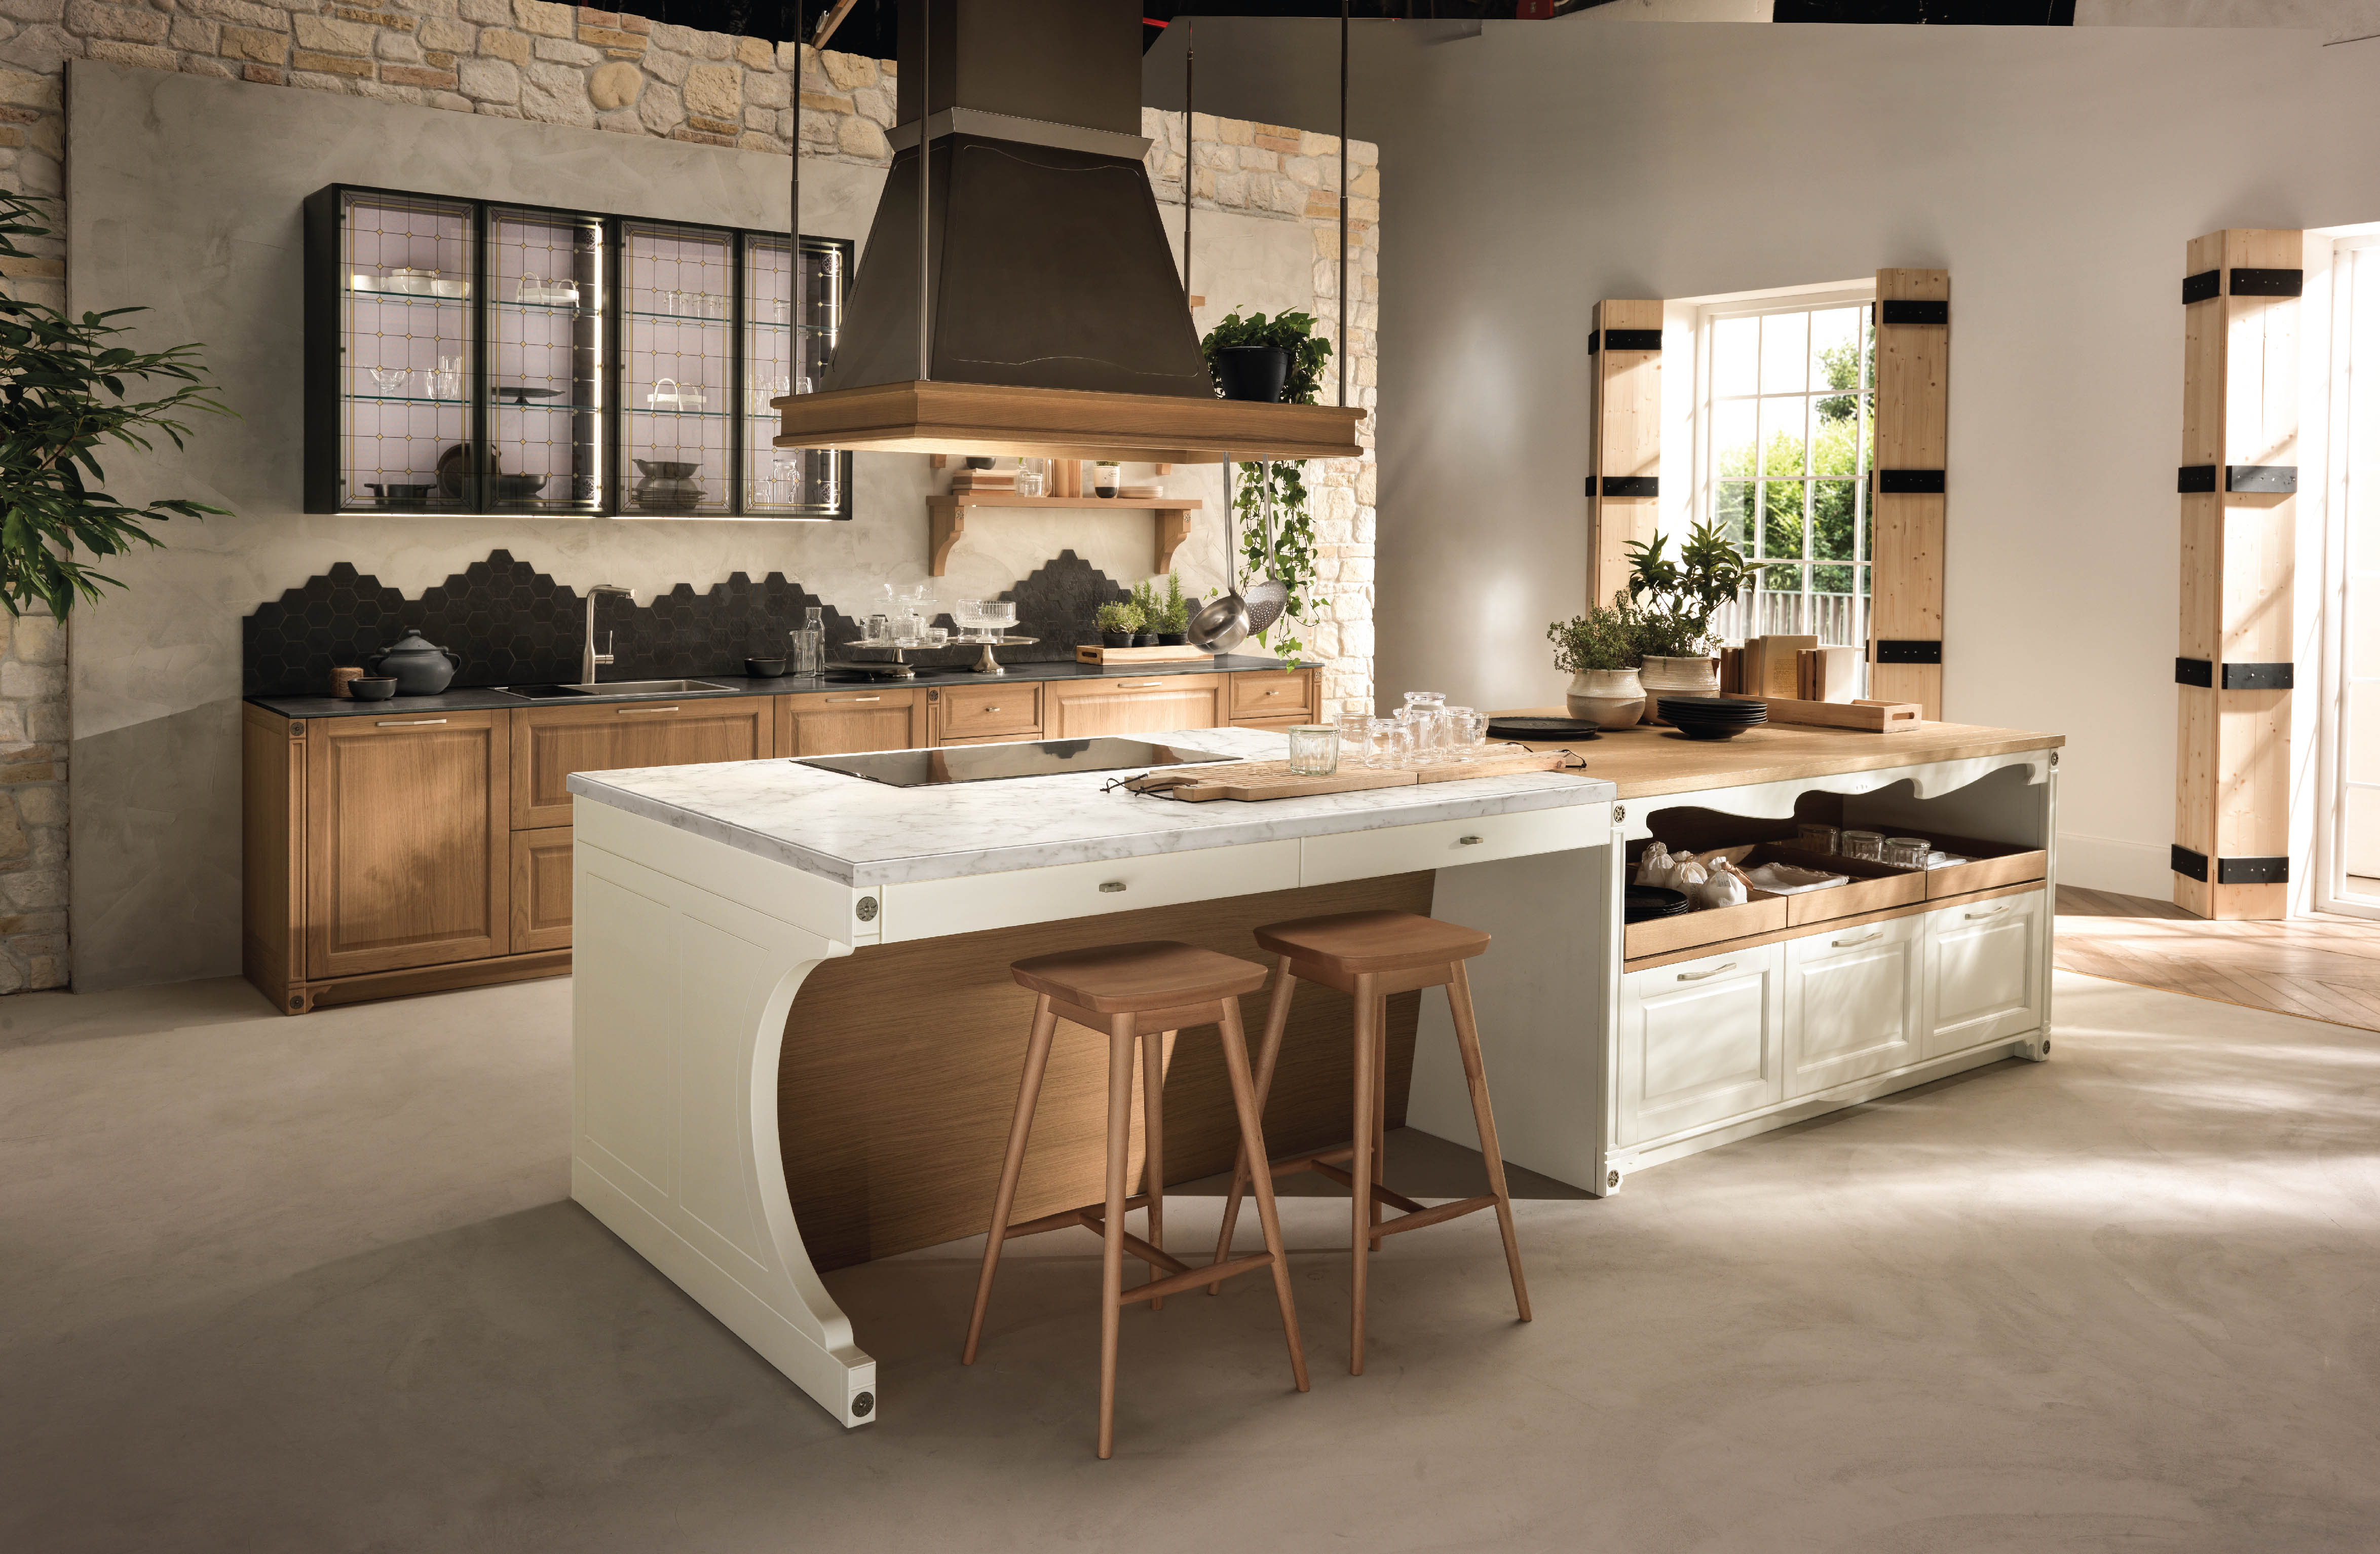 Aster Cucine Launches New Kitchens Concept Portrait The Architects Diary